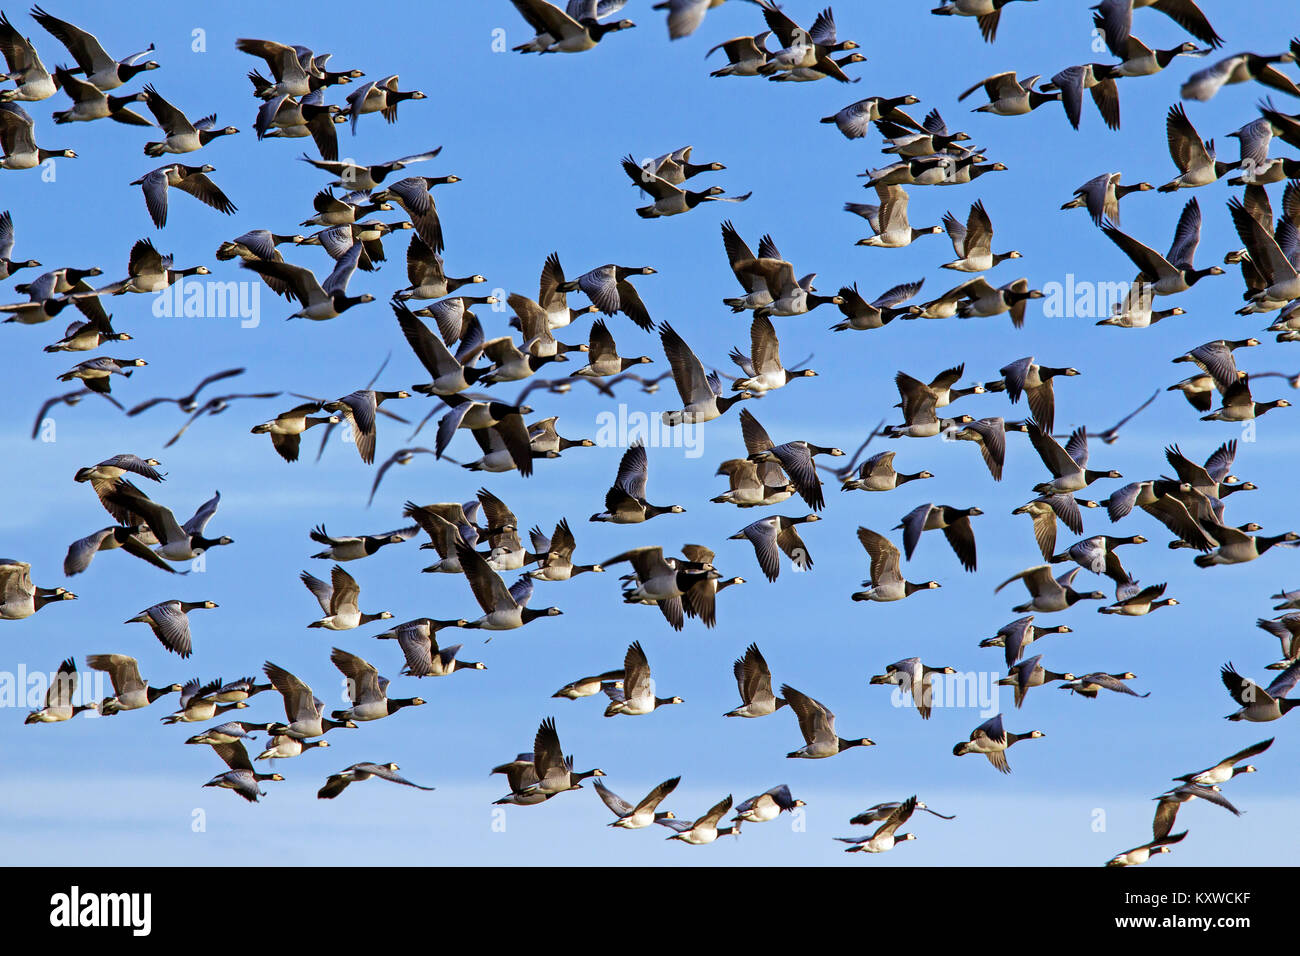 Large flock of migrating barnacle geese (Branta leucopsis) in flight against blue sky - Stock Image